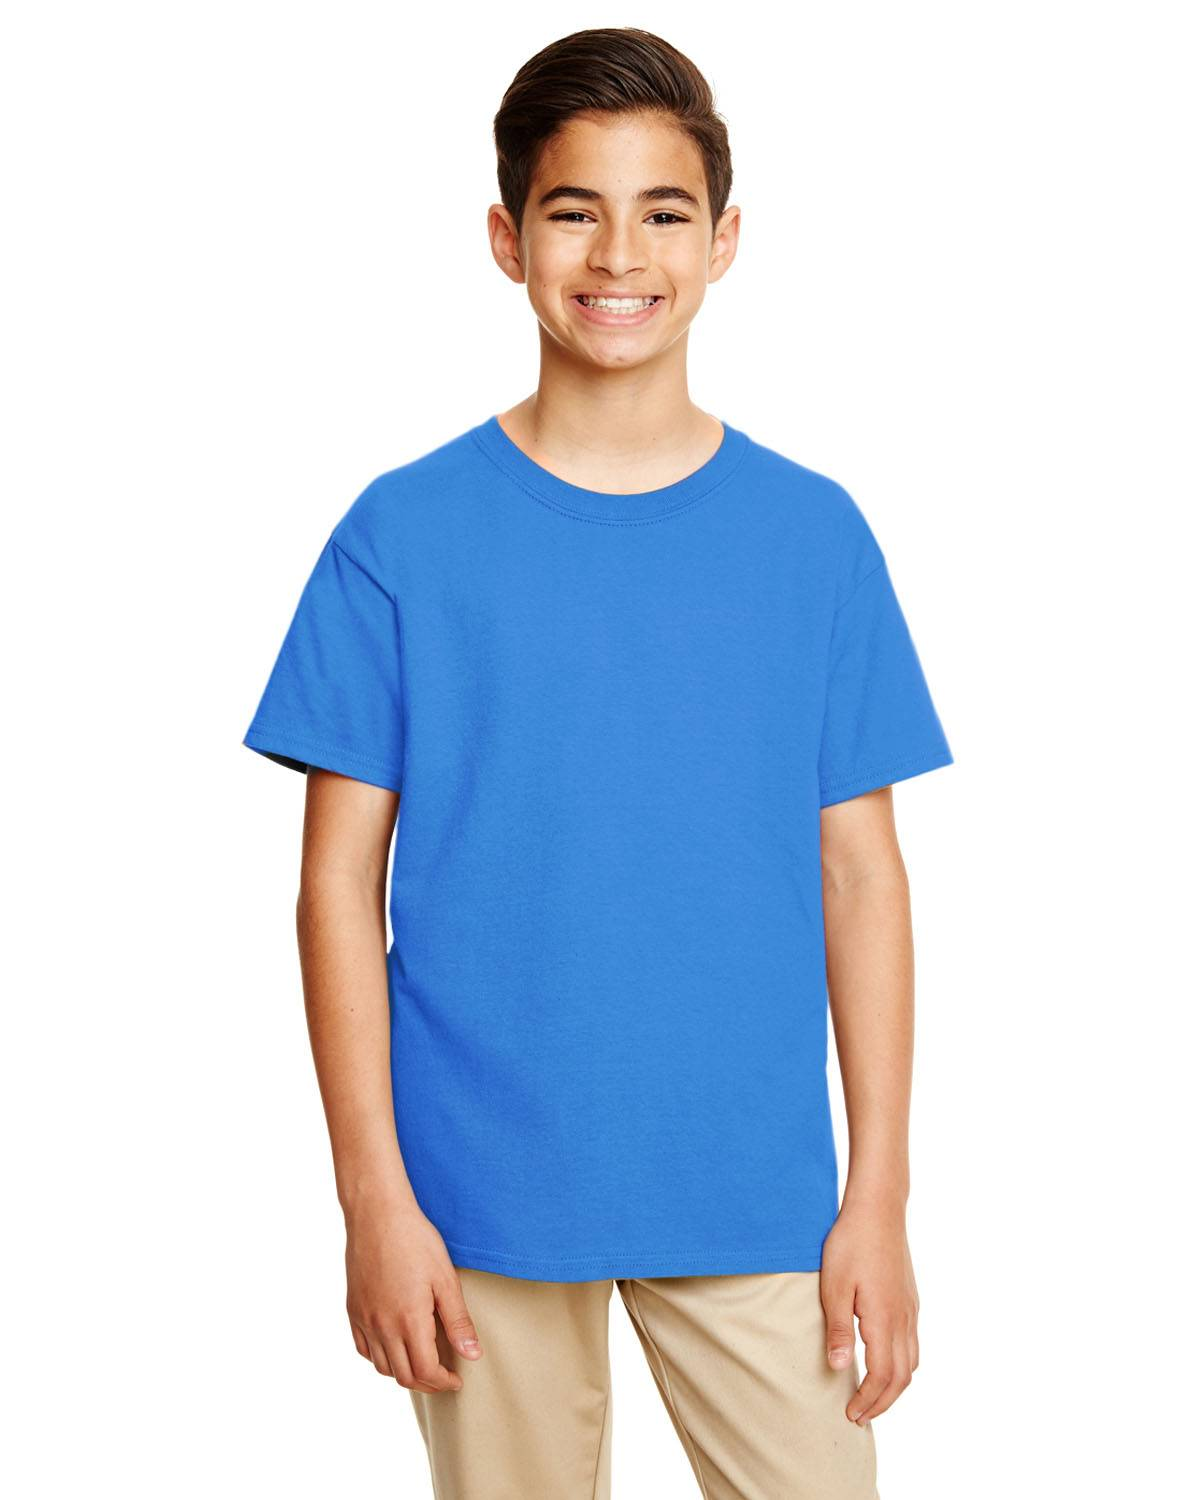 Gildan Youth Softstyle 7.5 oz./lin. yd. T-Shirt | G645B